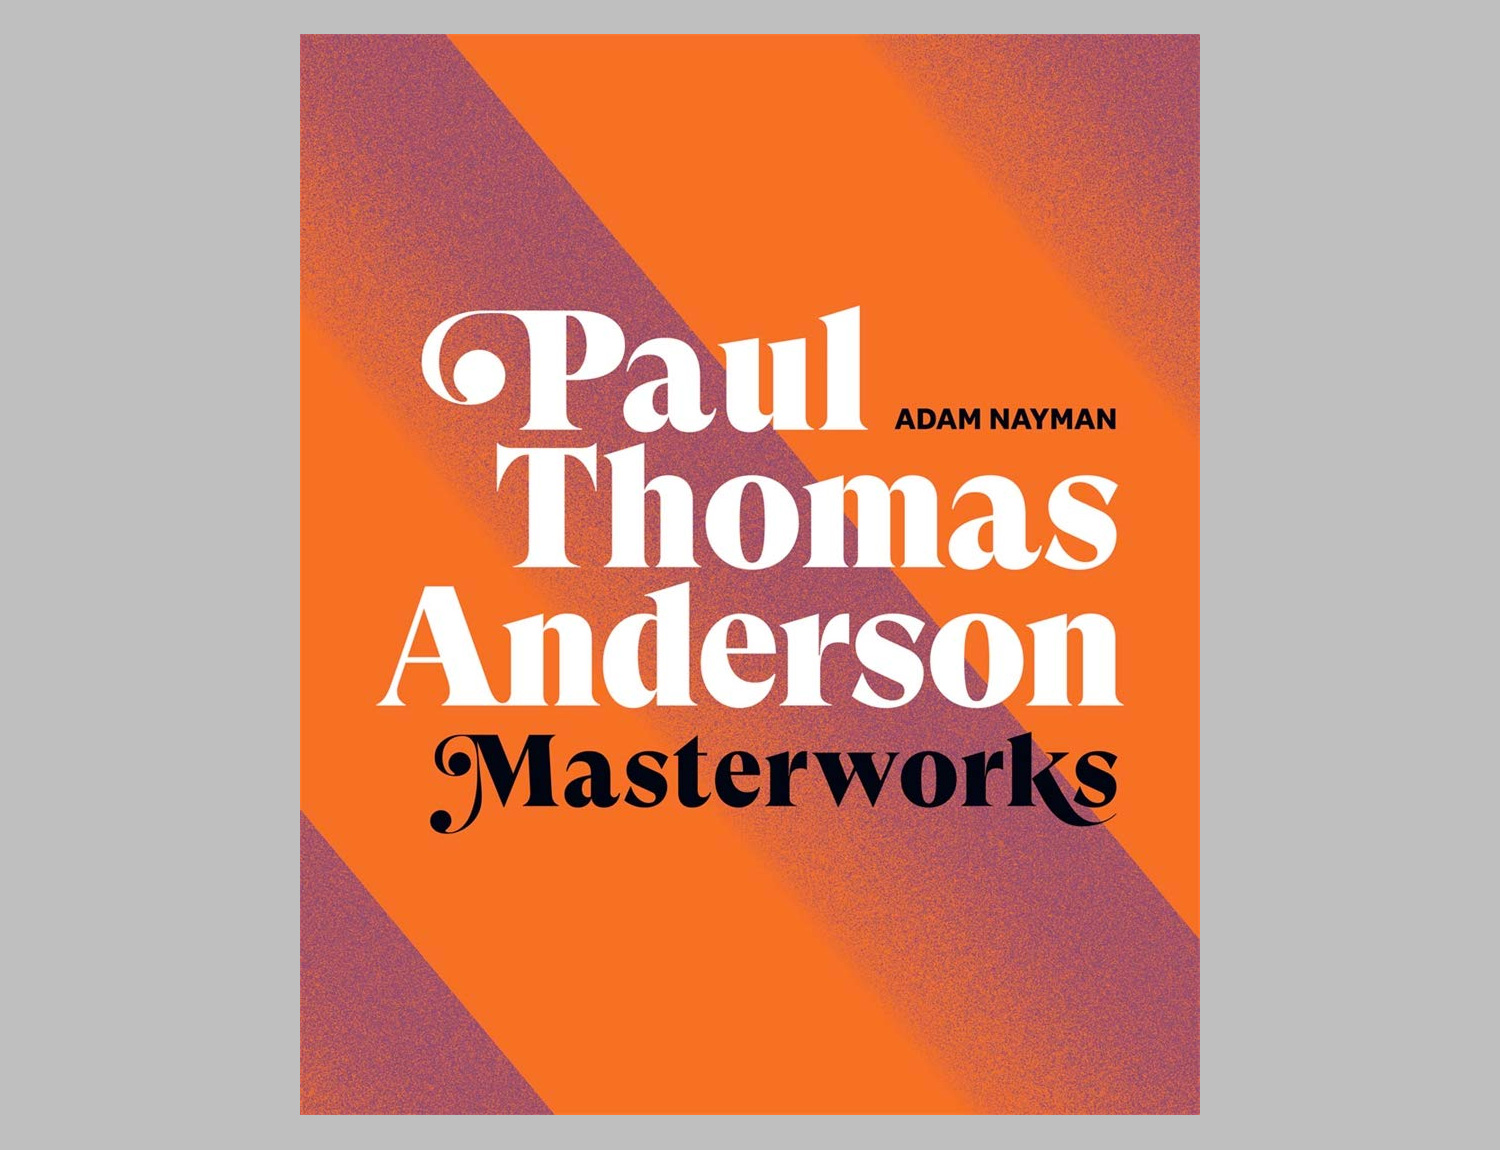 Paul Thomas Anderson: Masterworks at werd.com